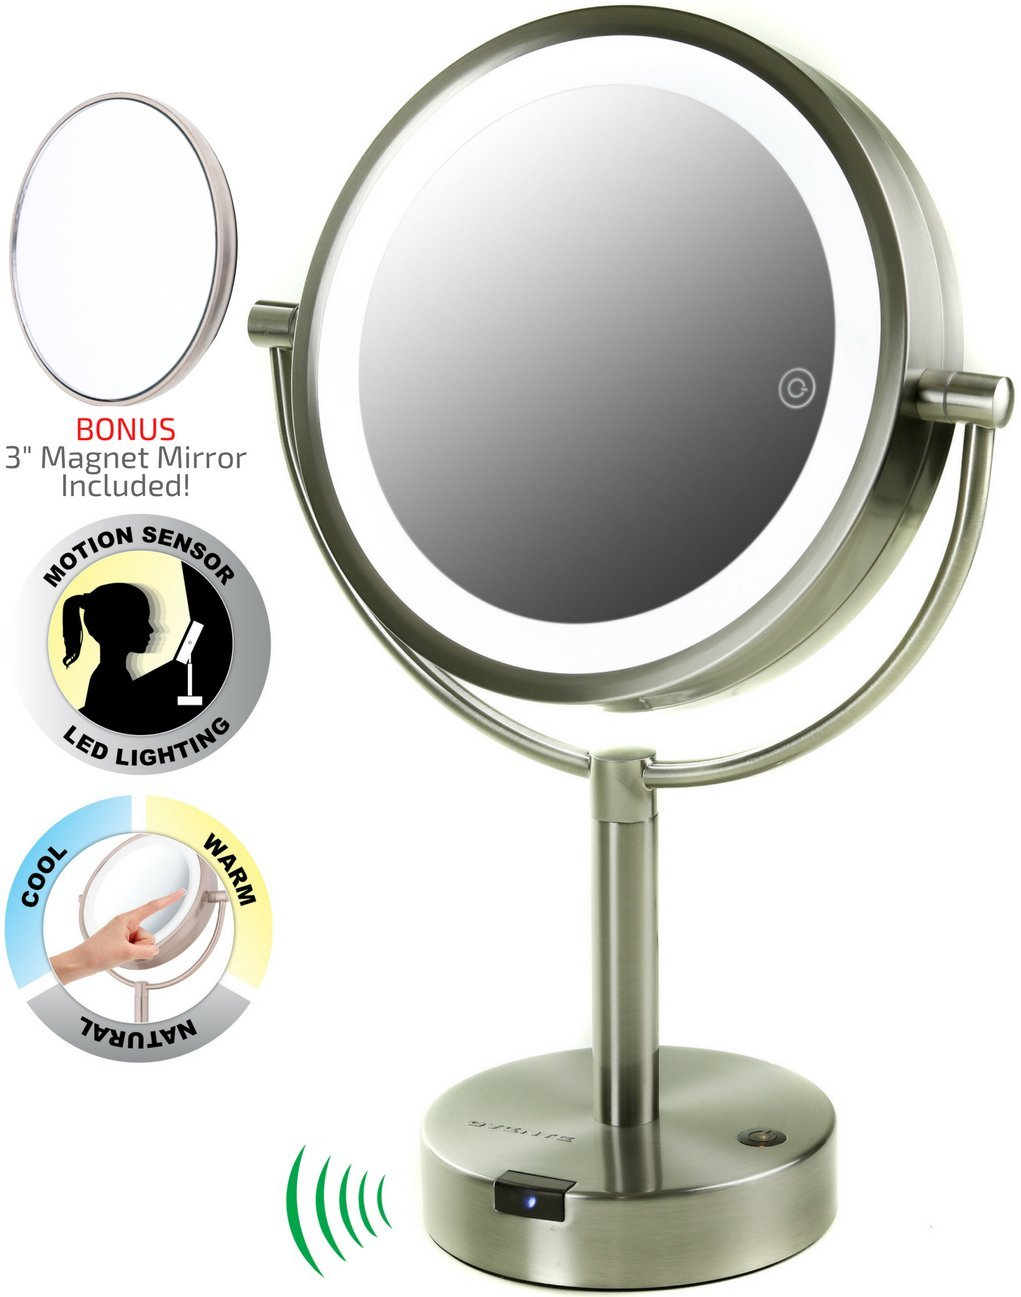 Ovente 360-Degree LED Lighted Tabletop Makeup Mirror with Motion Sensor, 8.5 Inch, Dual-Sided, 1x/5x Magnification, Smart Touch Technology, Nickel Brushed (MPTS8385BR1x5x)